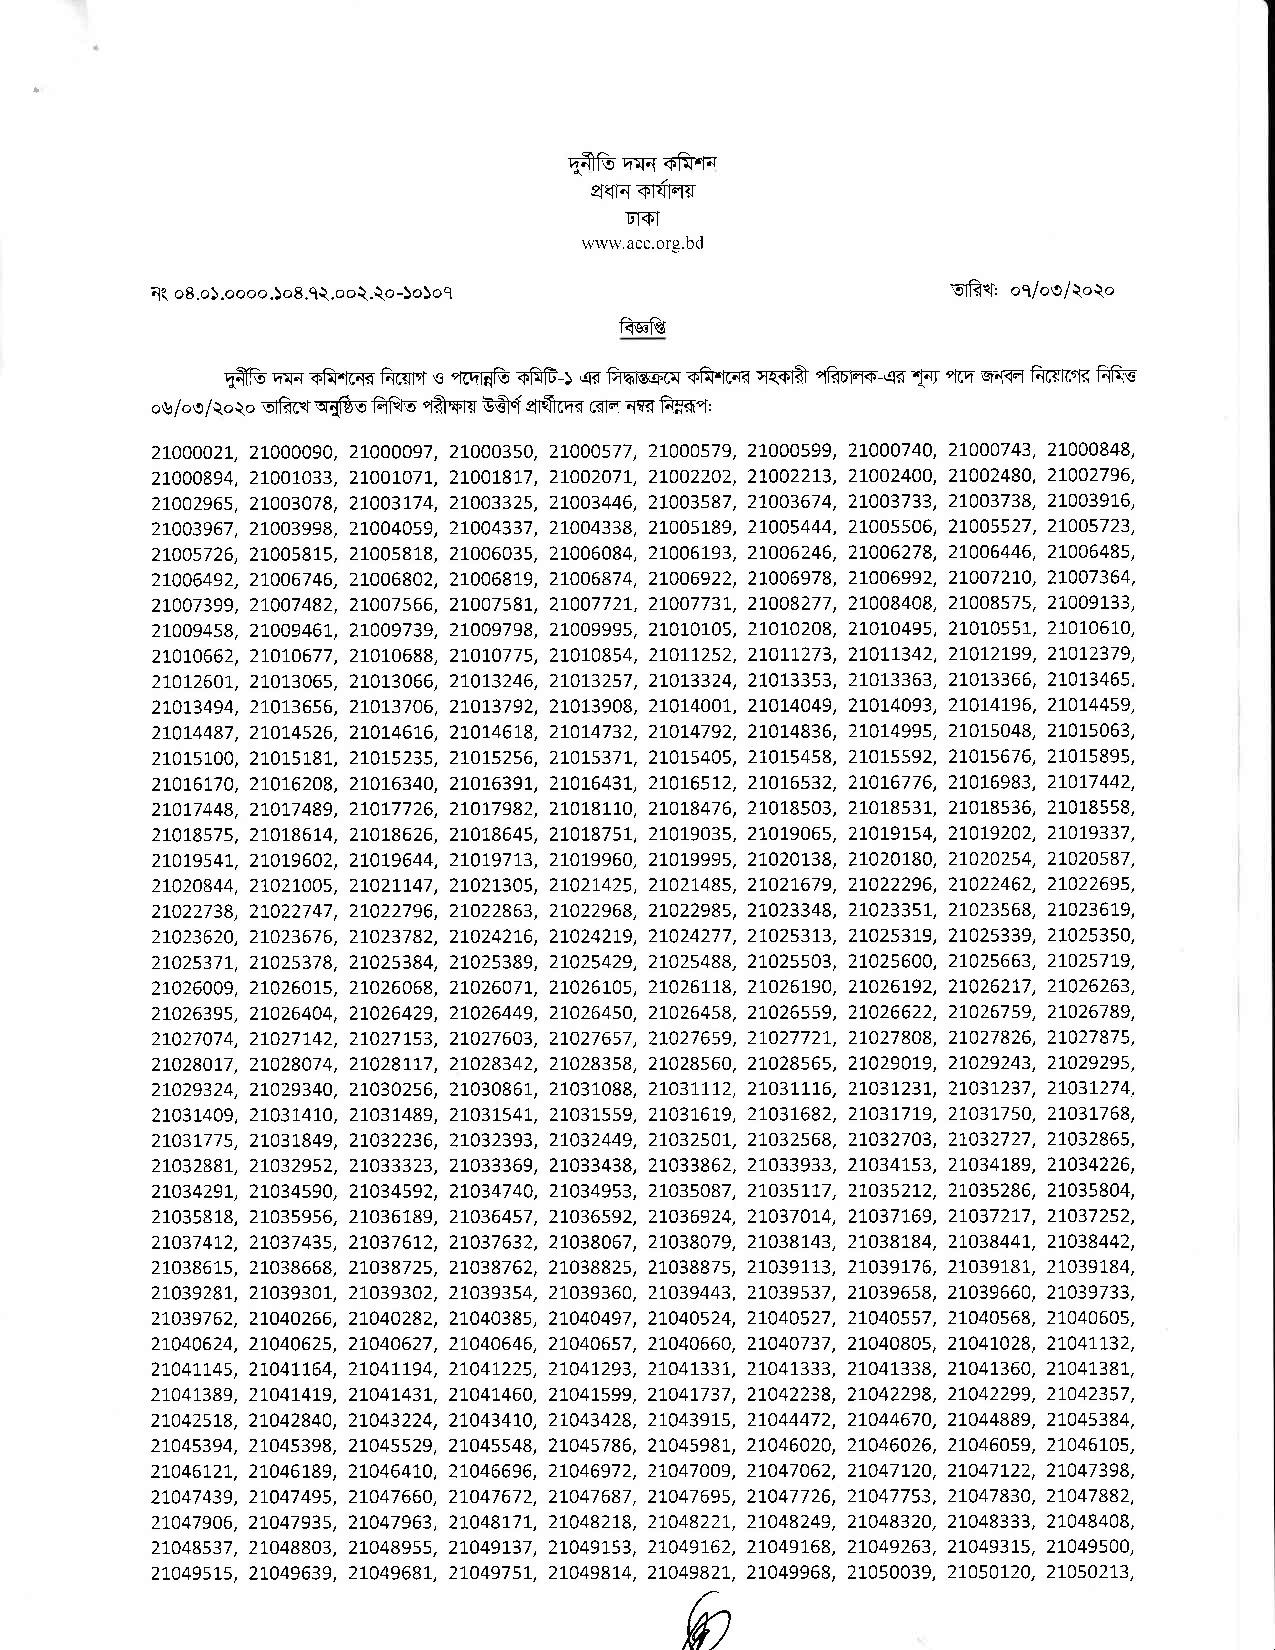 ACC Written exam result viva date and seat plan 2020